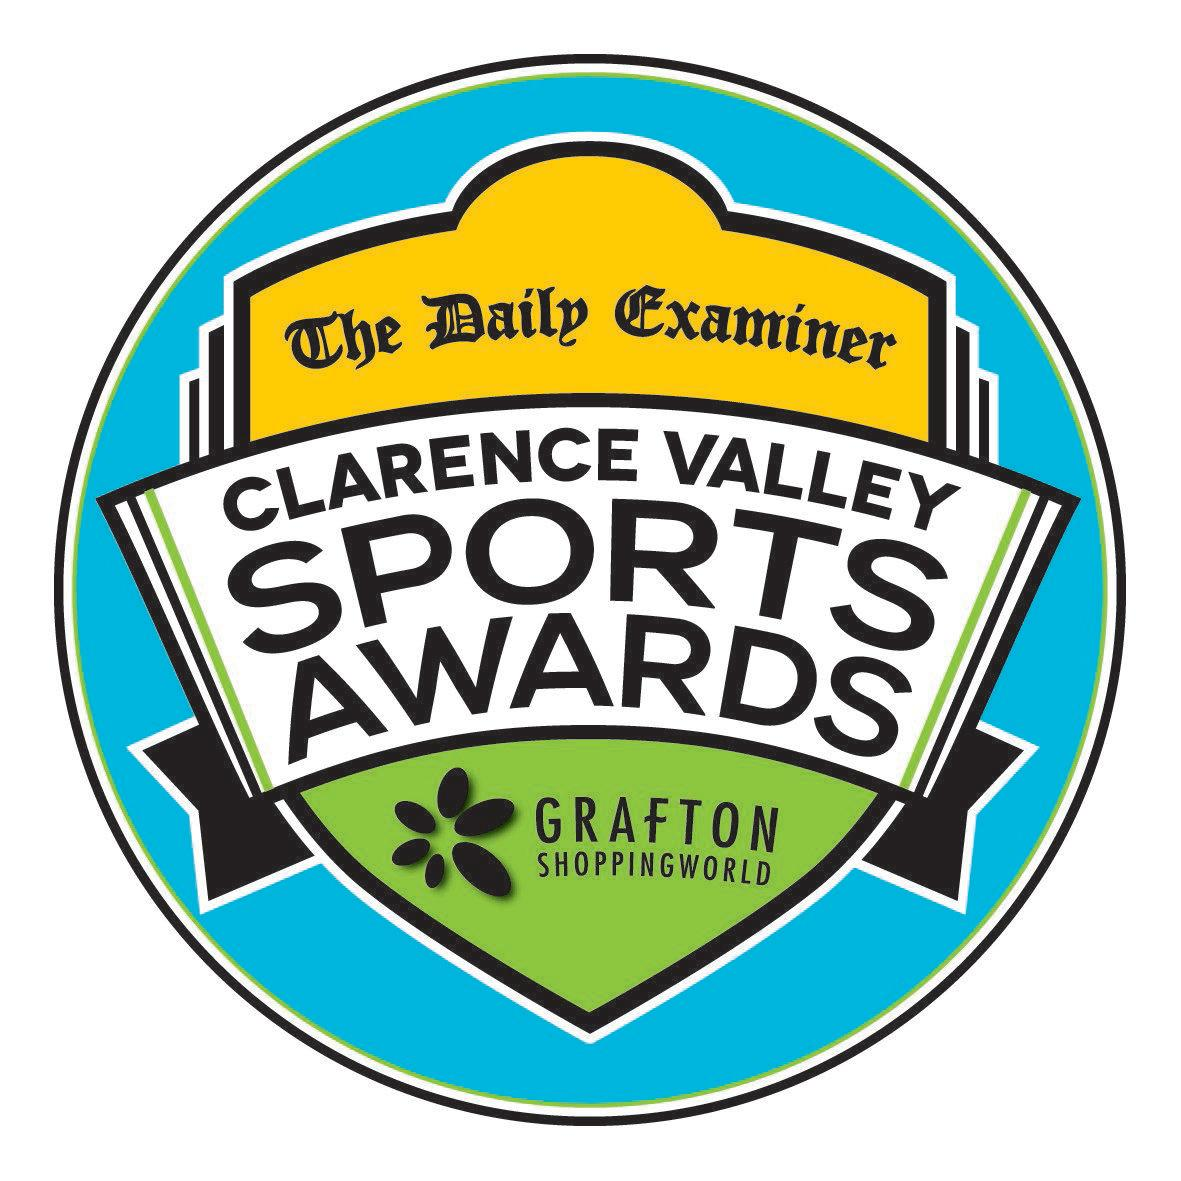 Clarence Valley Sports Awards logo